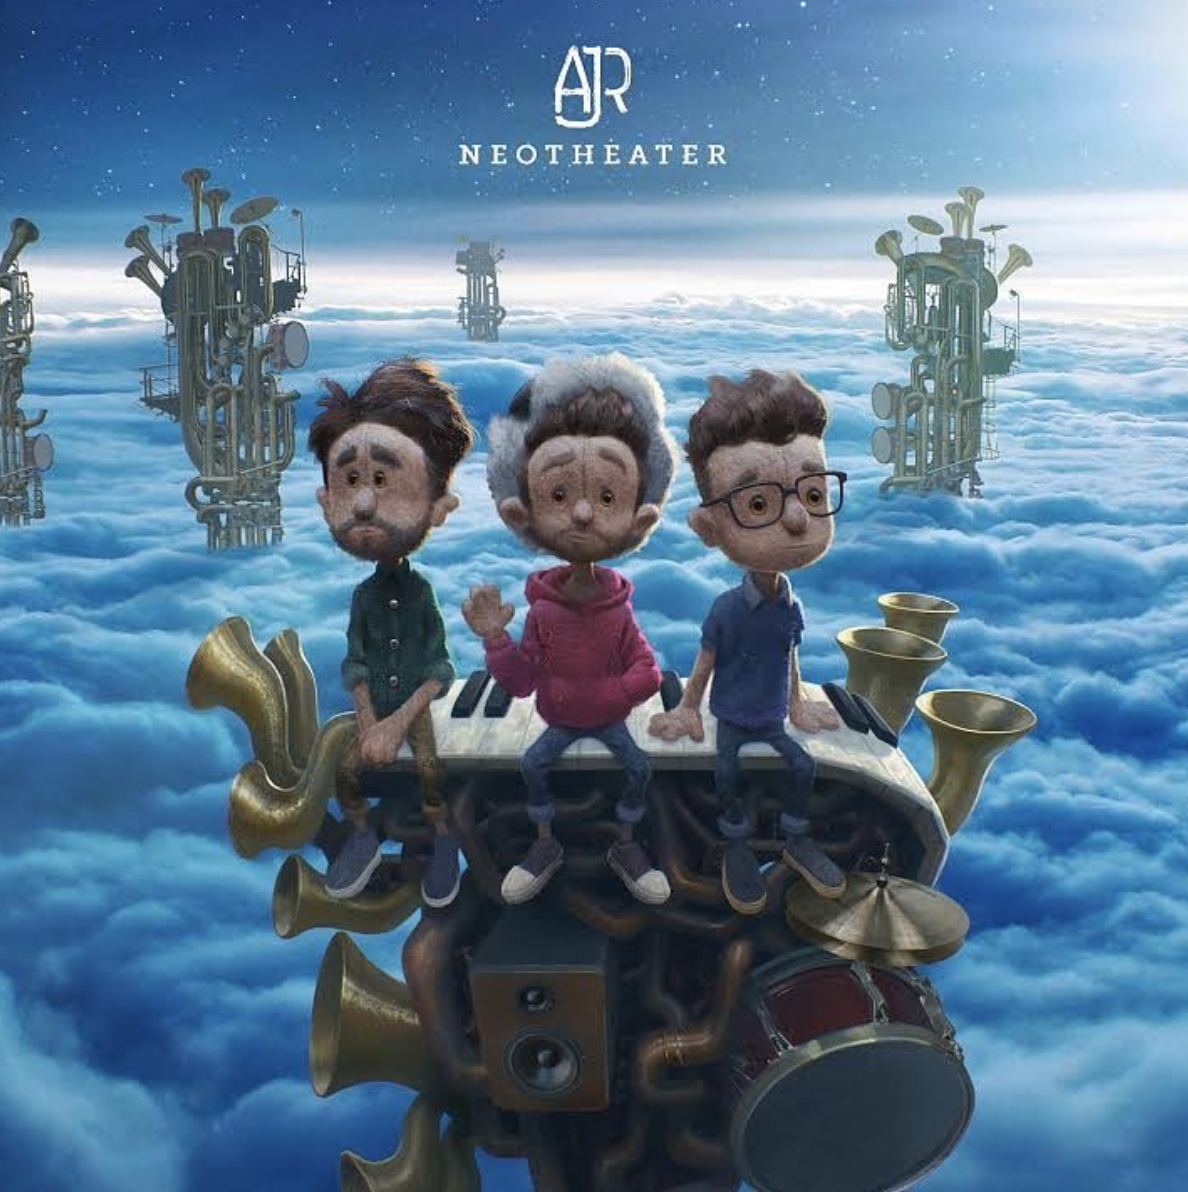 """AJR celebrated their upcoming album with their new single """"Birthday Party"""". (@ajrbrothers/Instagram screenshot)"""